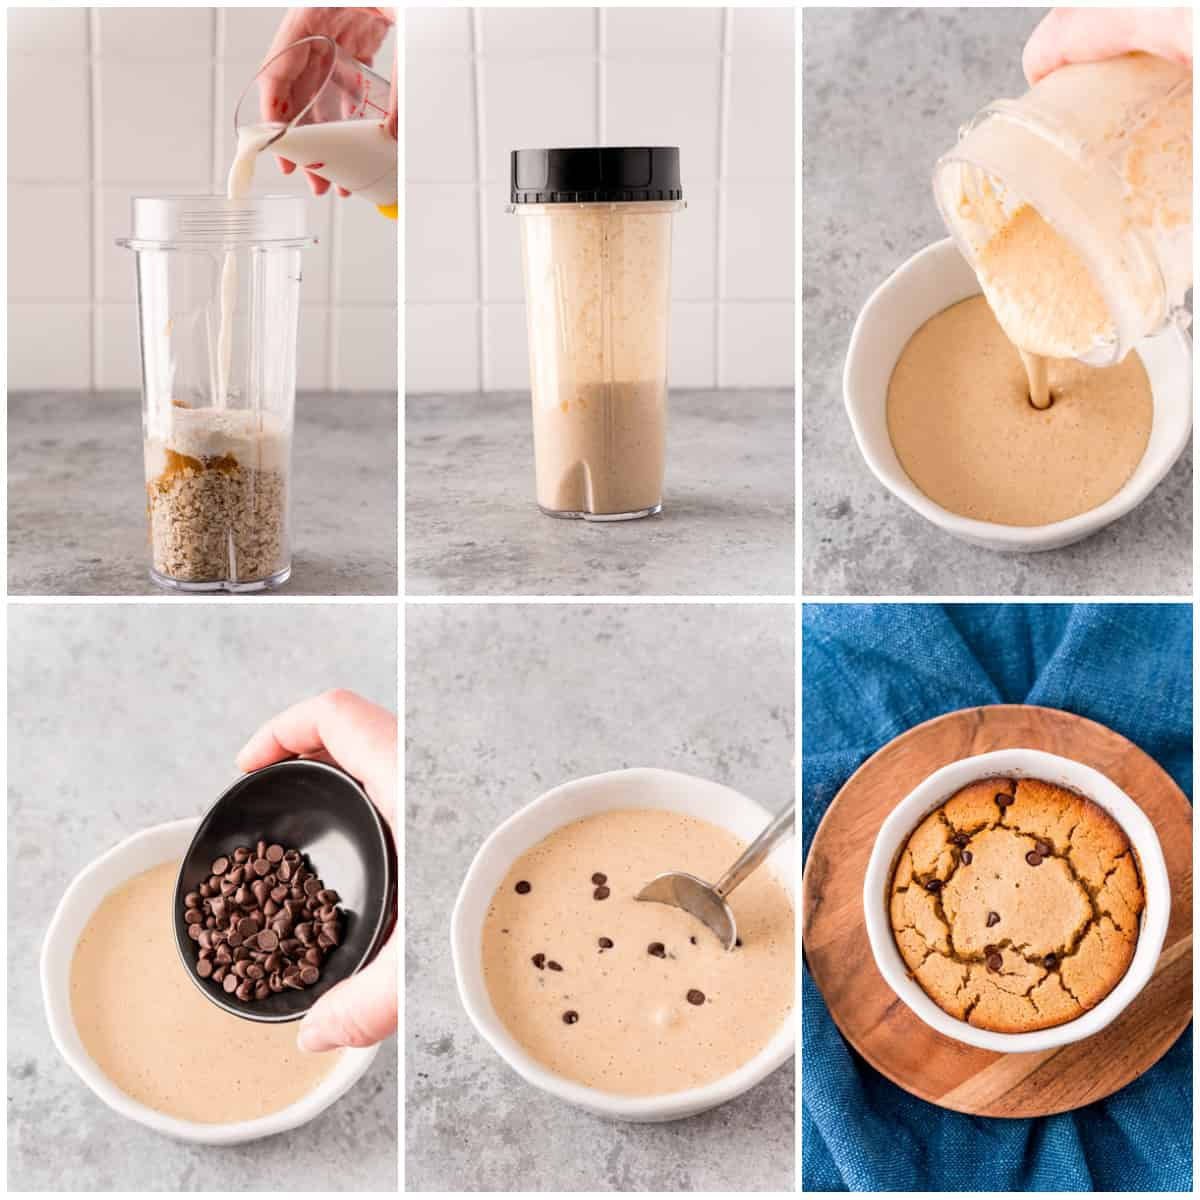 Step by step photos on how to make Peanut Butter & Chocolate Baked Oats